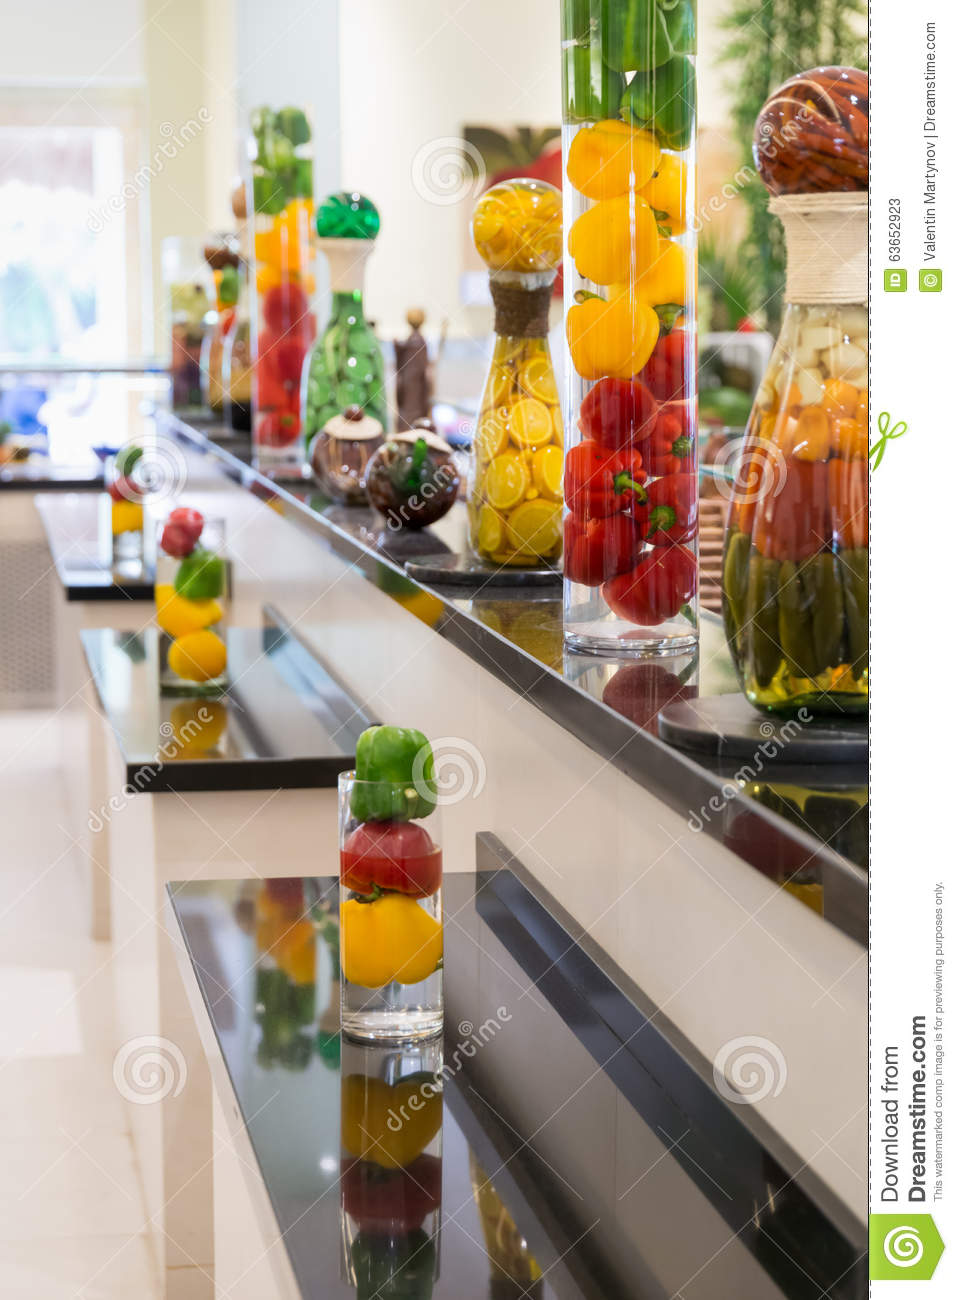 Pickeled vegetables and fruits on a display as